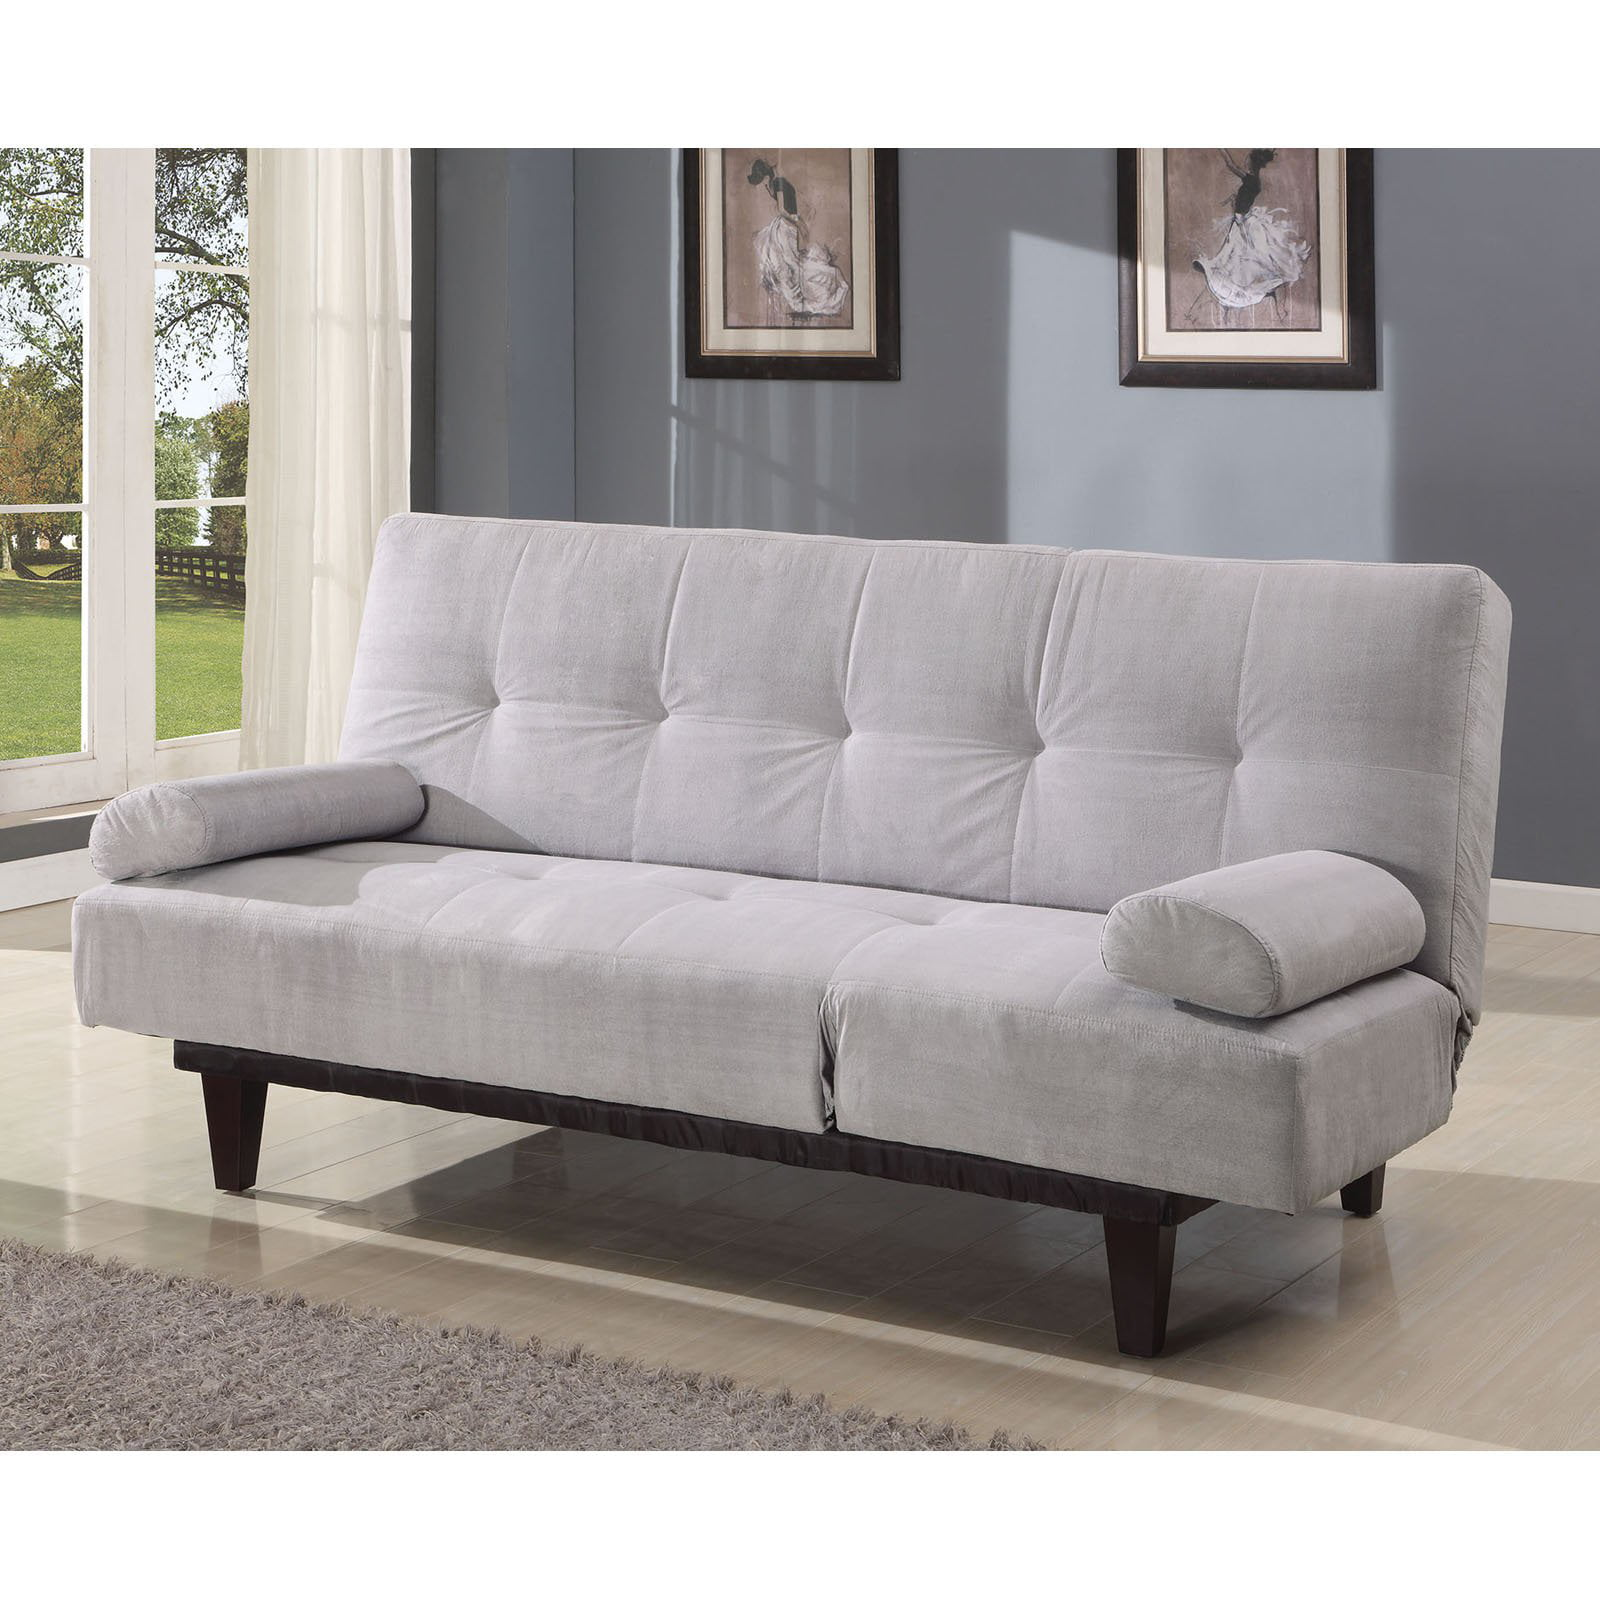 barcelona convertible futon sofa bed and lounger with pillows multiple colors walmartcom